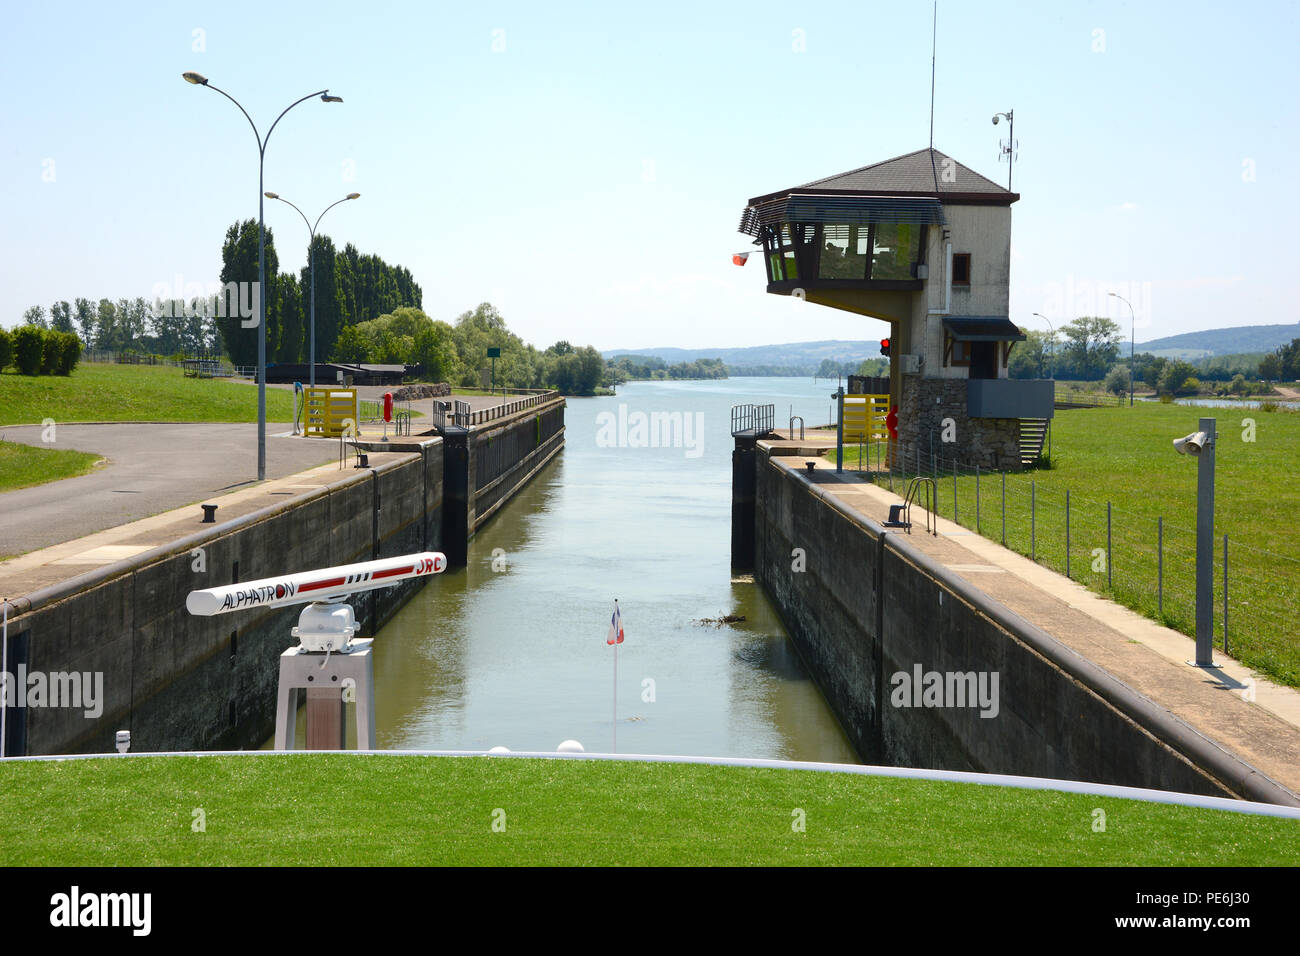 Lock on the River Saone, France - Stock Image